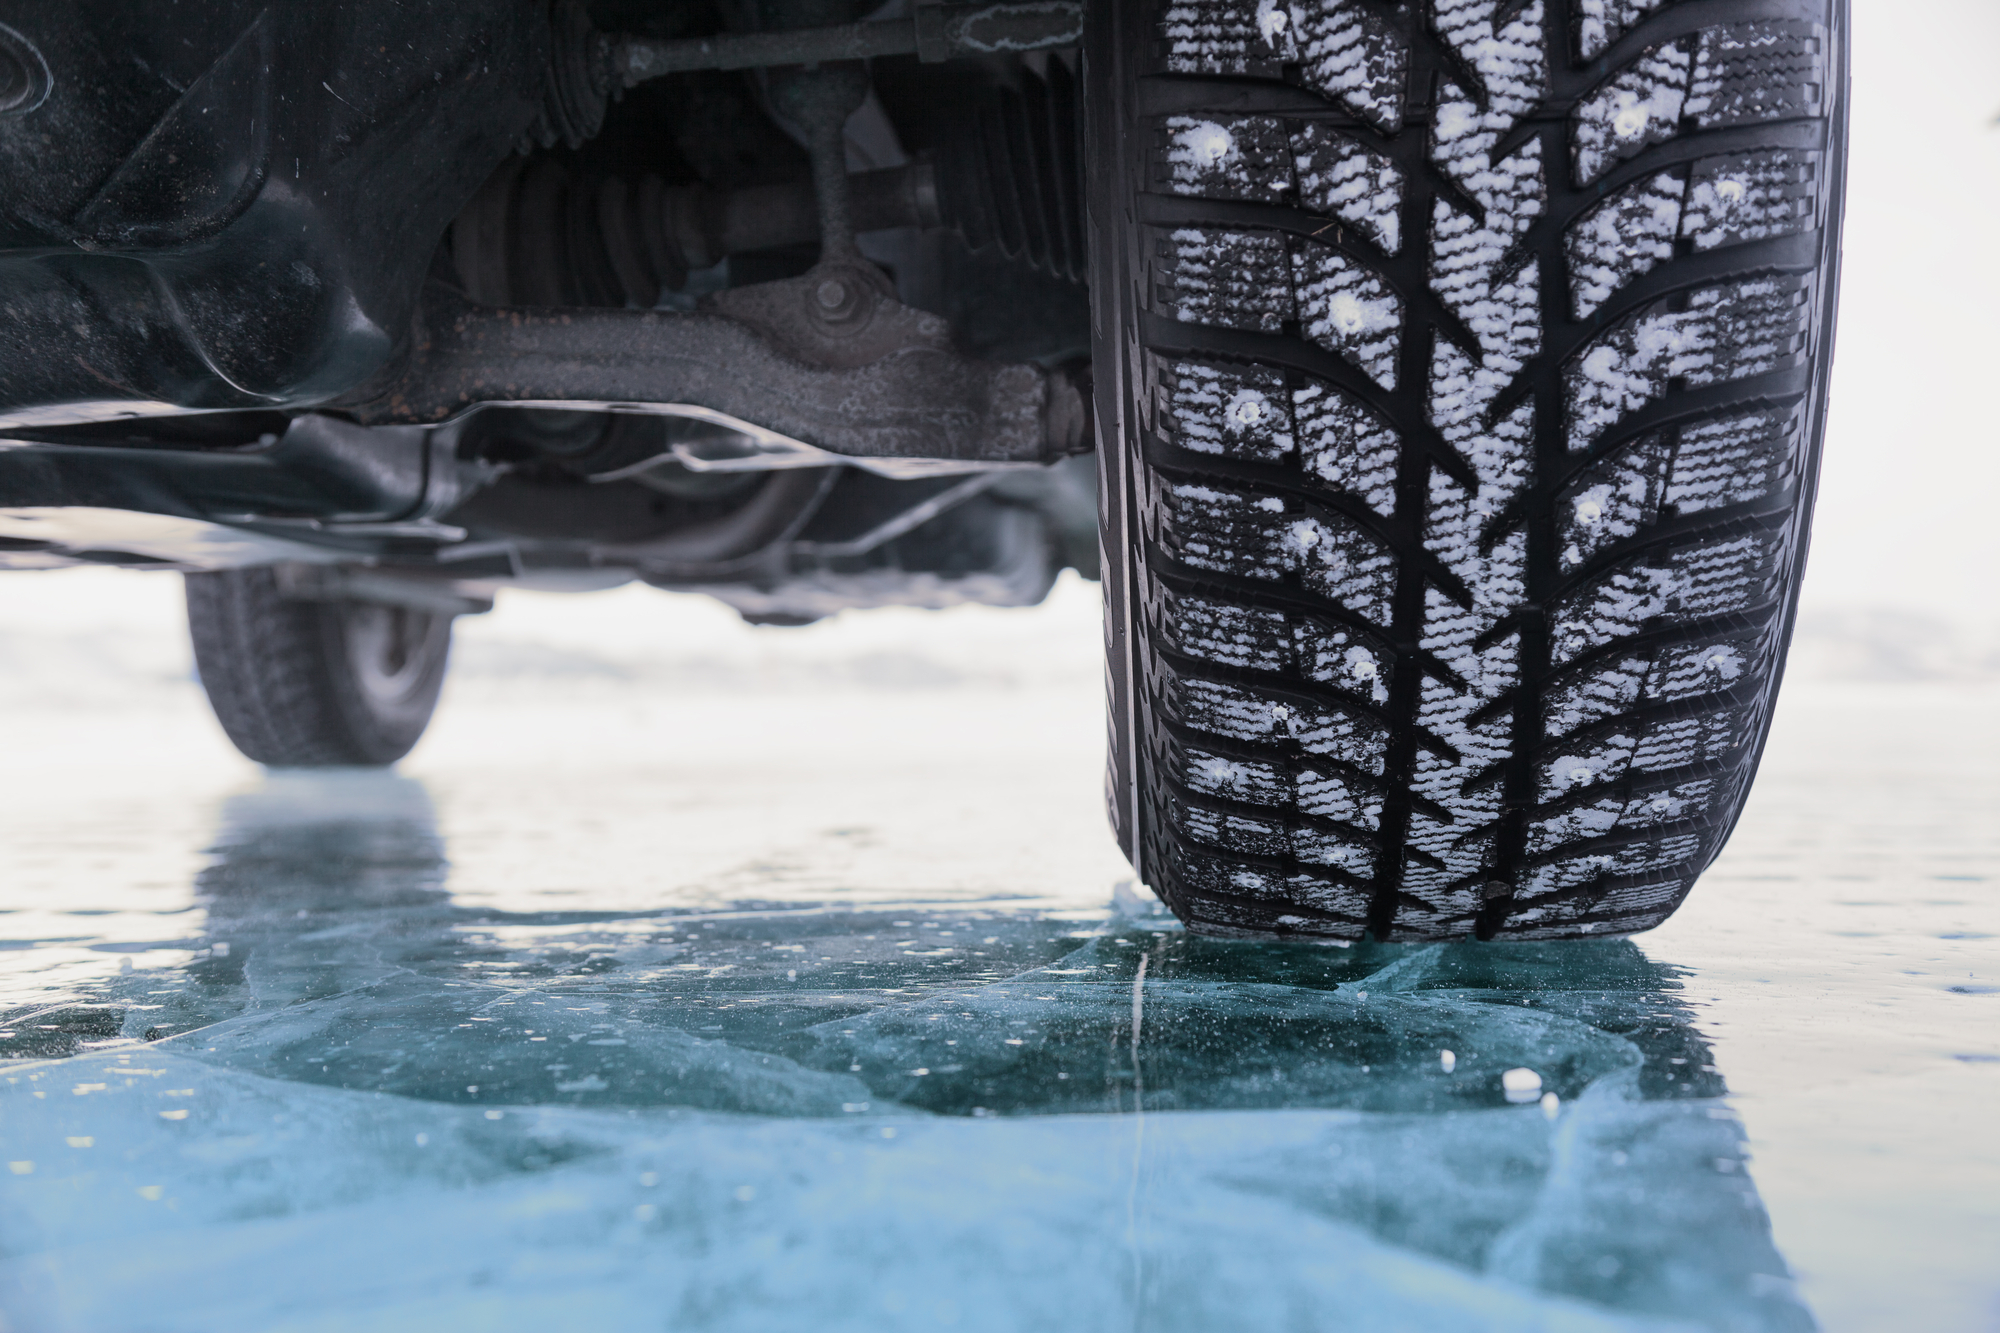 Truck tires on an icy road